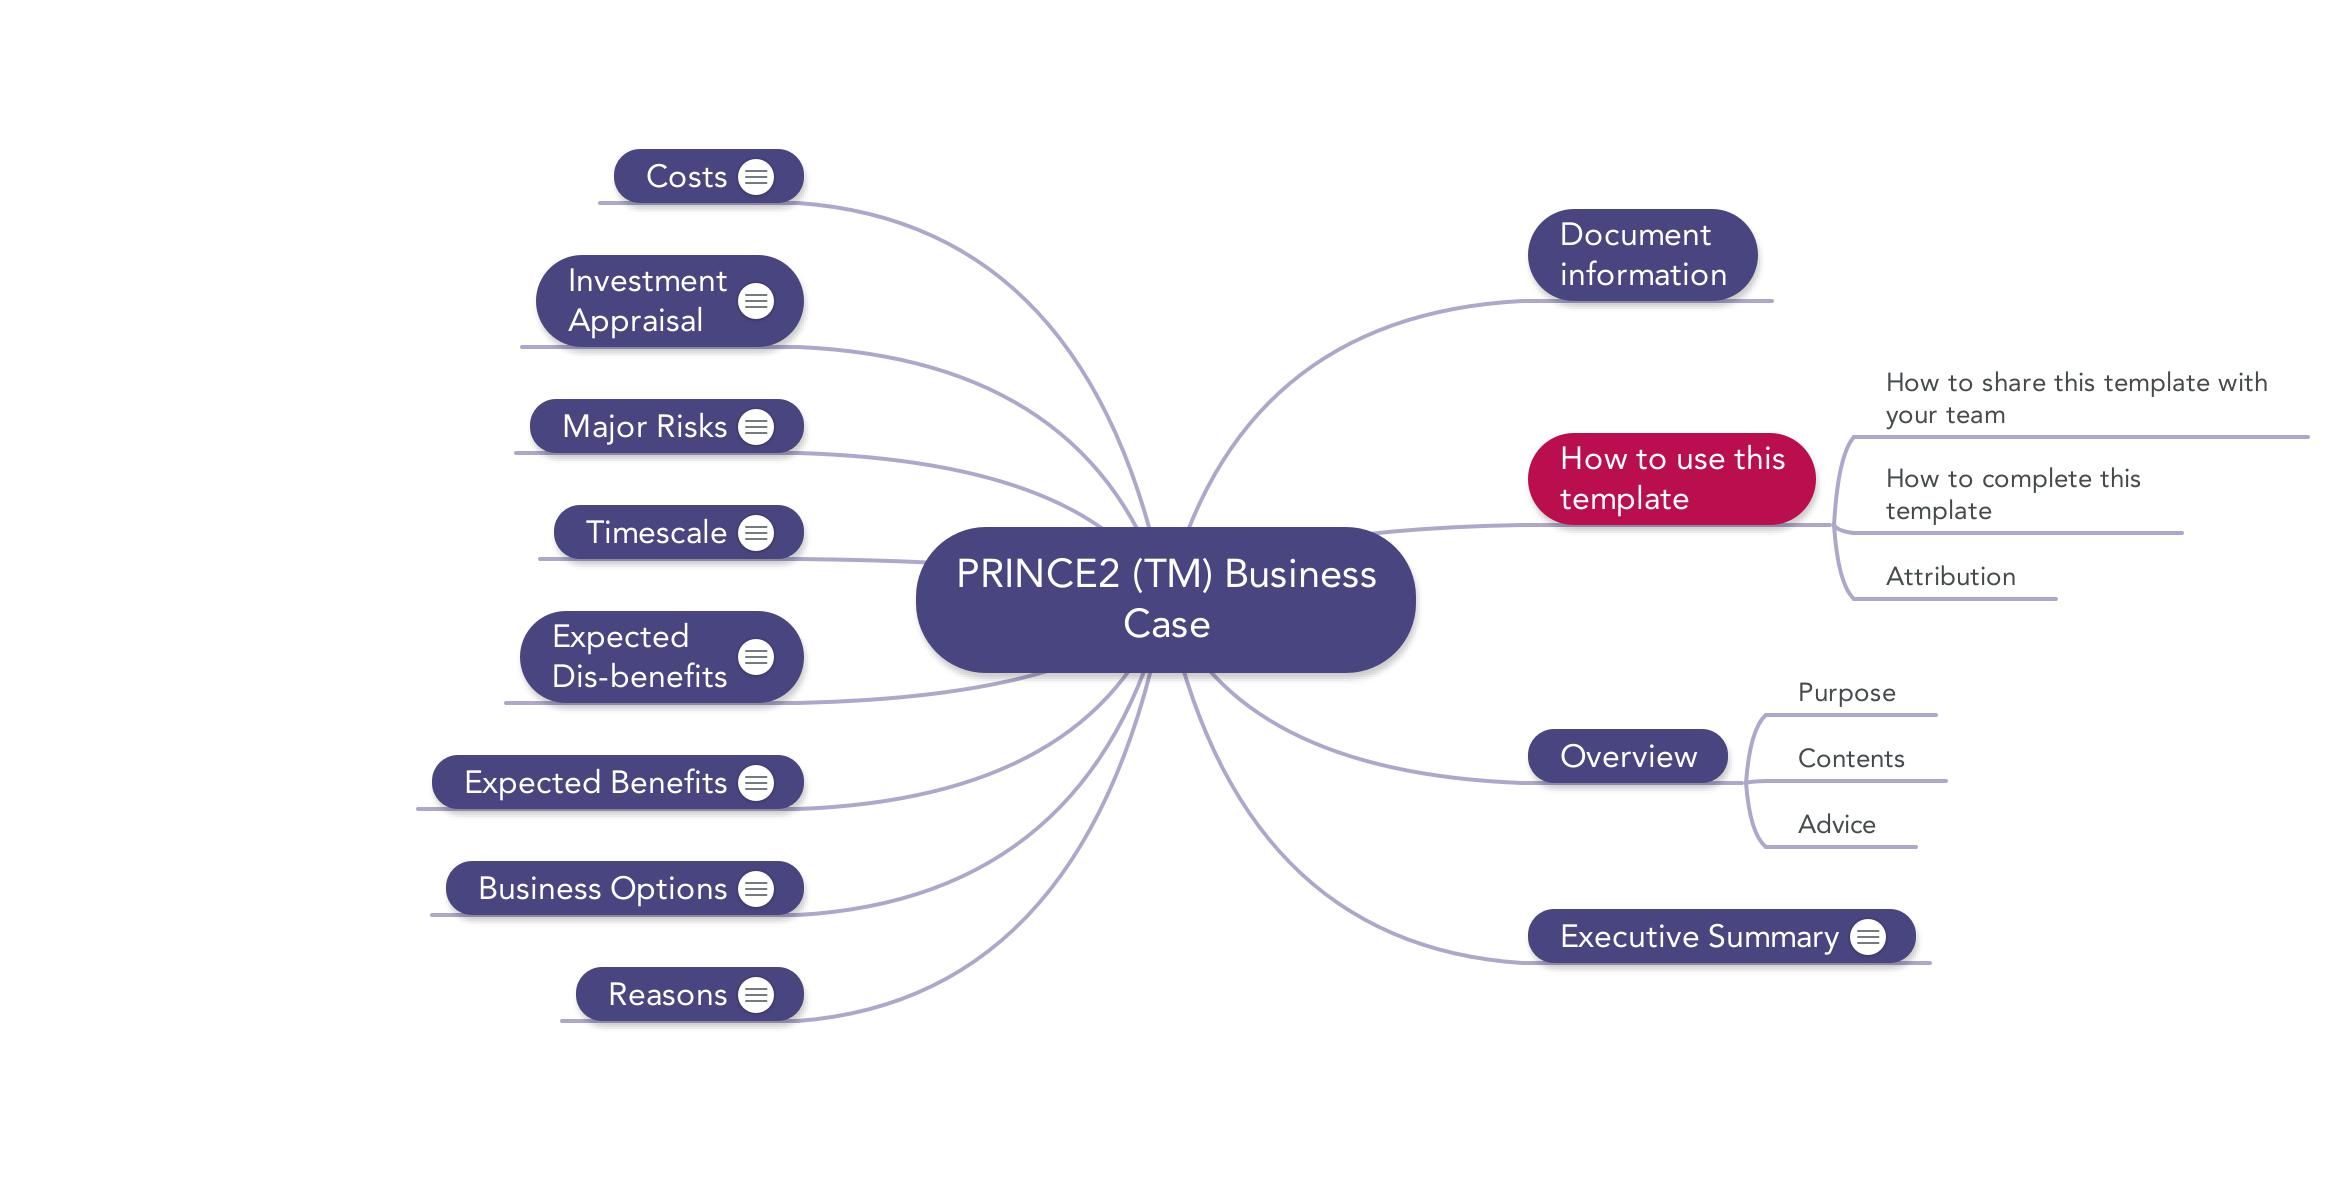 Prince2 business case sample resume templates sample resume and prince 2 mindmap business case template prince2 a prince2 business case is used to document flashek Gallery